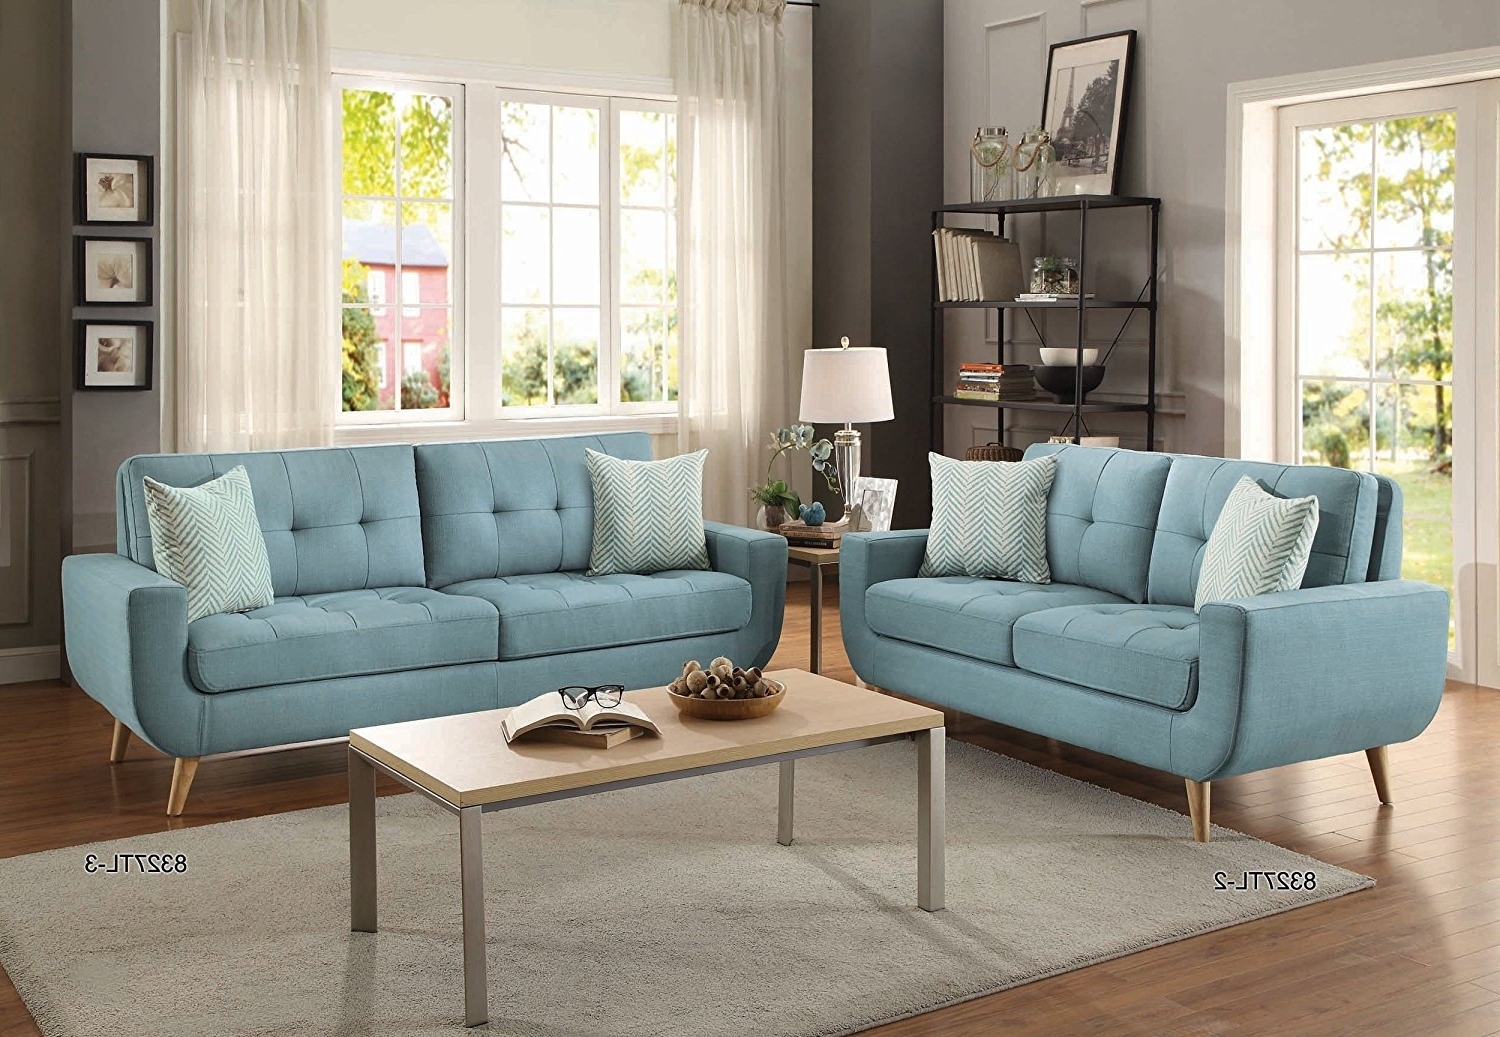 Furniture : Klaussner Hybrid Sofa Sofa Sale January Klaussner Within Current Jackson Tn Sectional Sofas (View 5 of 20)